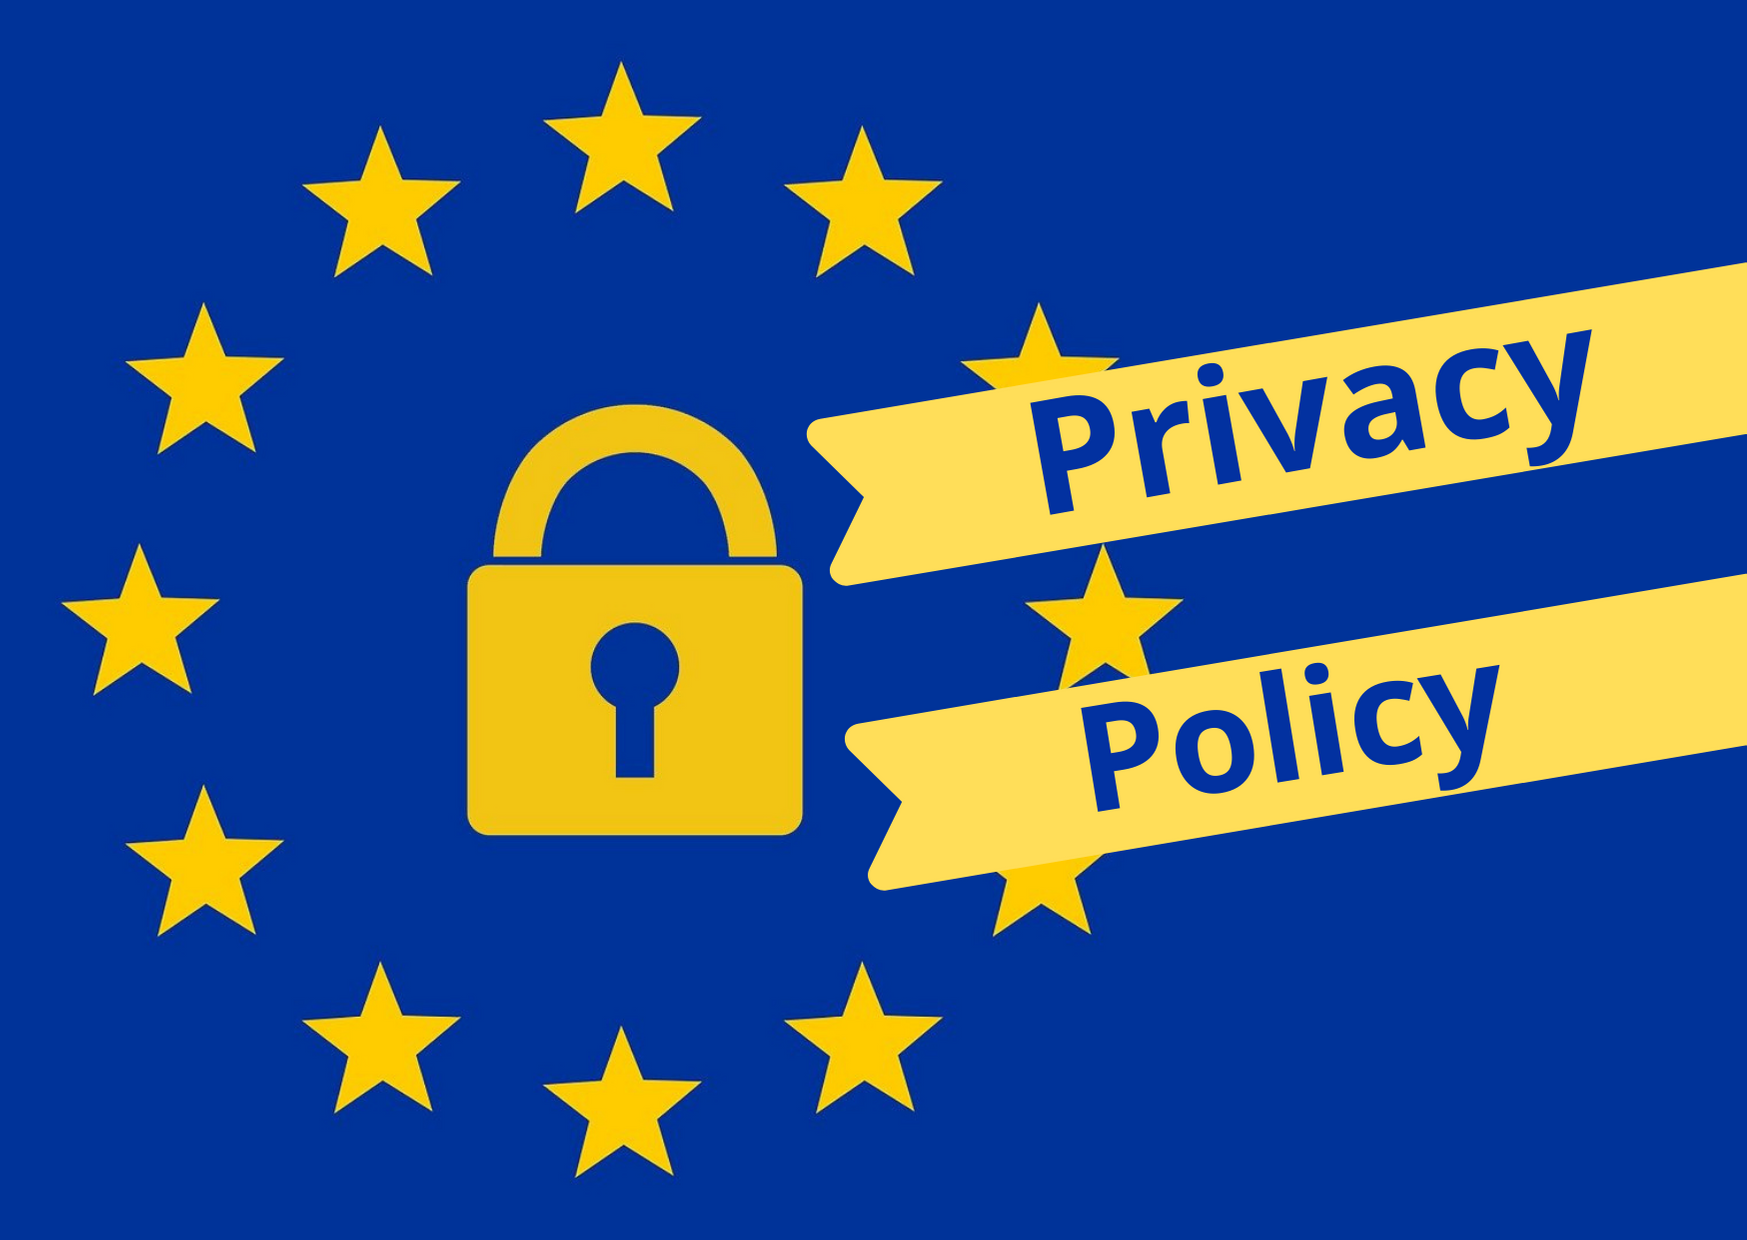 logo link Privacy policy